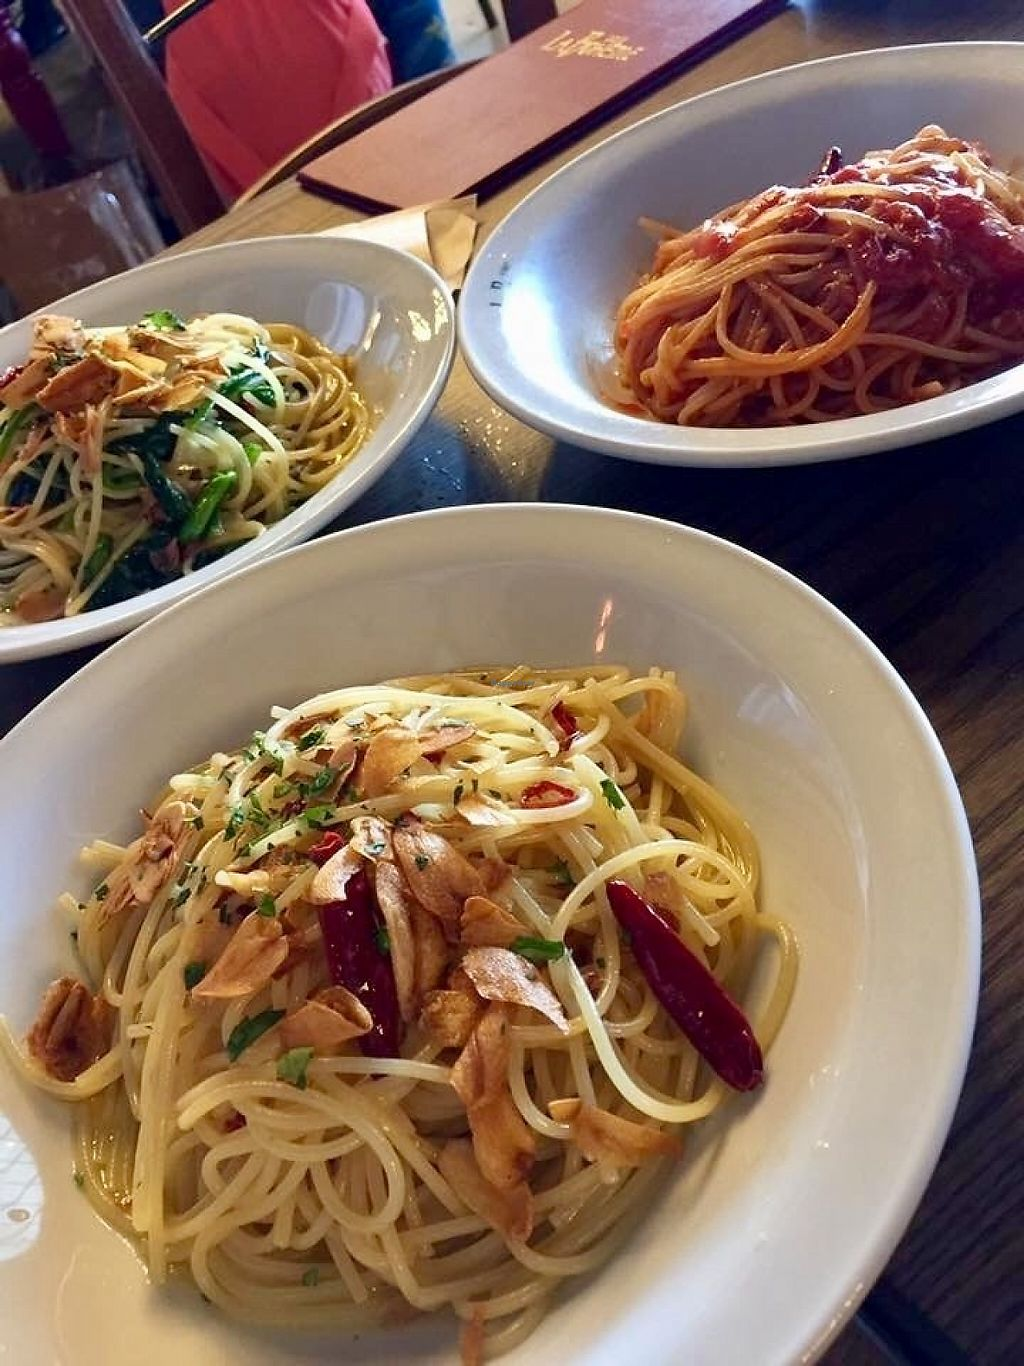 "Photo of Cafe La Boheme - Omotesando  by <a href=""/members/profile/paulkates"">paulkates</a> <br/>Vegan pasta <br/> June 7, 2017  - <a href='/contact/abuse/image/93484/266529'>Report</a>"